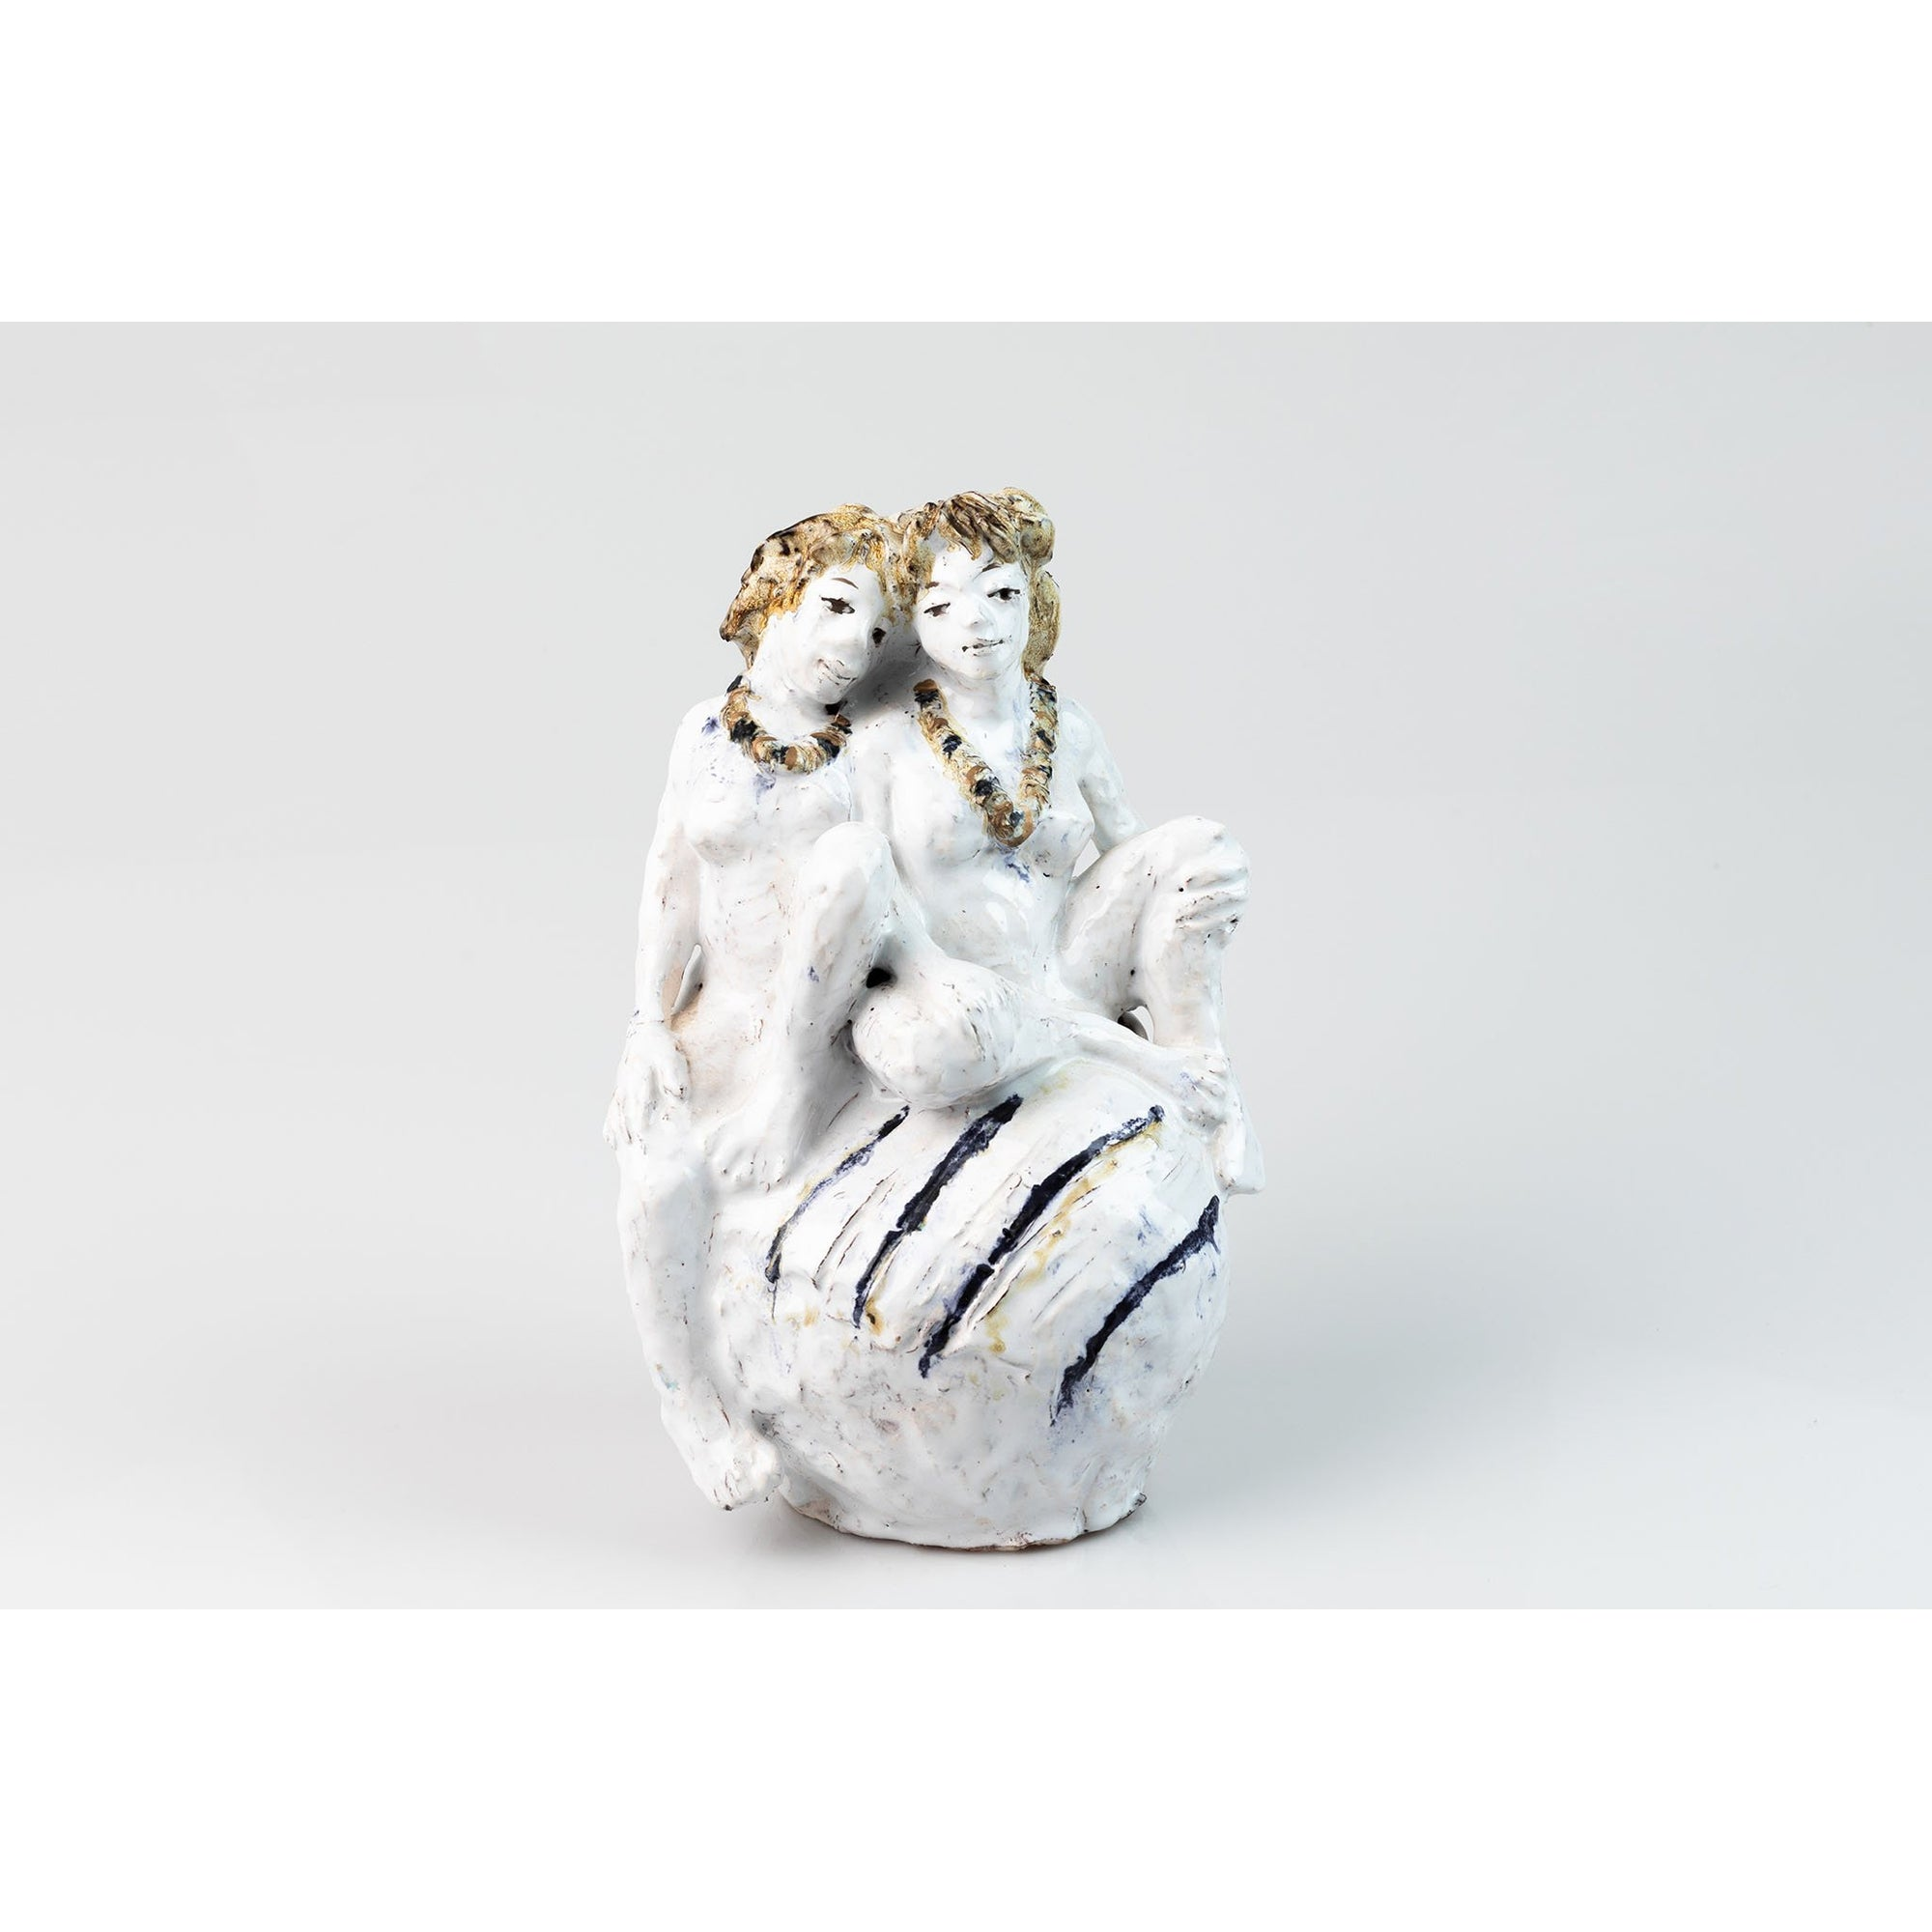 'Picnic' glazed terracotta sculpture by Sophie Howard, available at Padstow Gallery, Cornwall